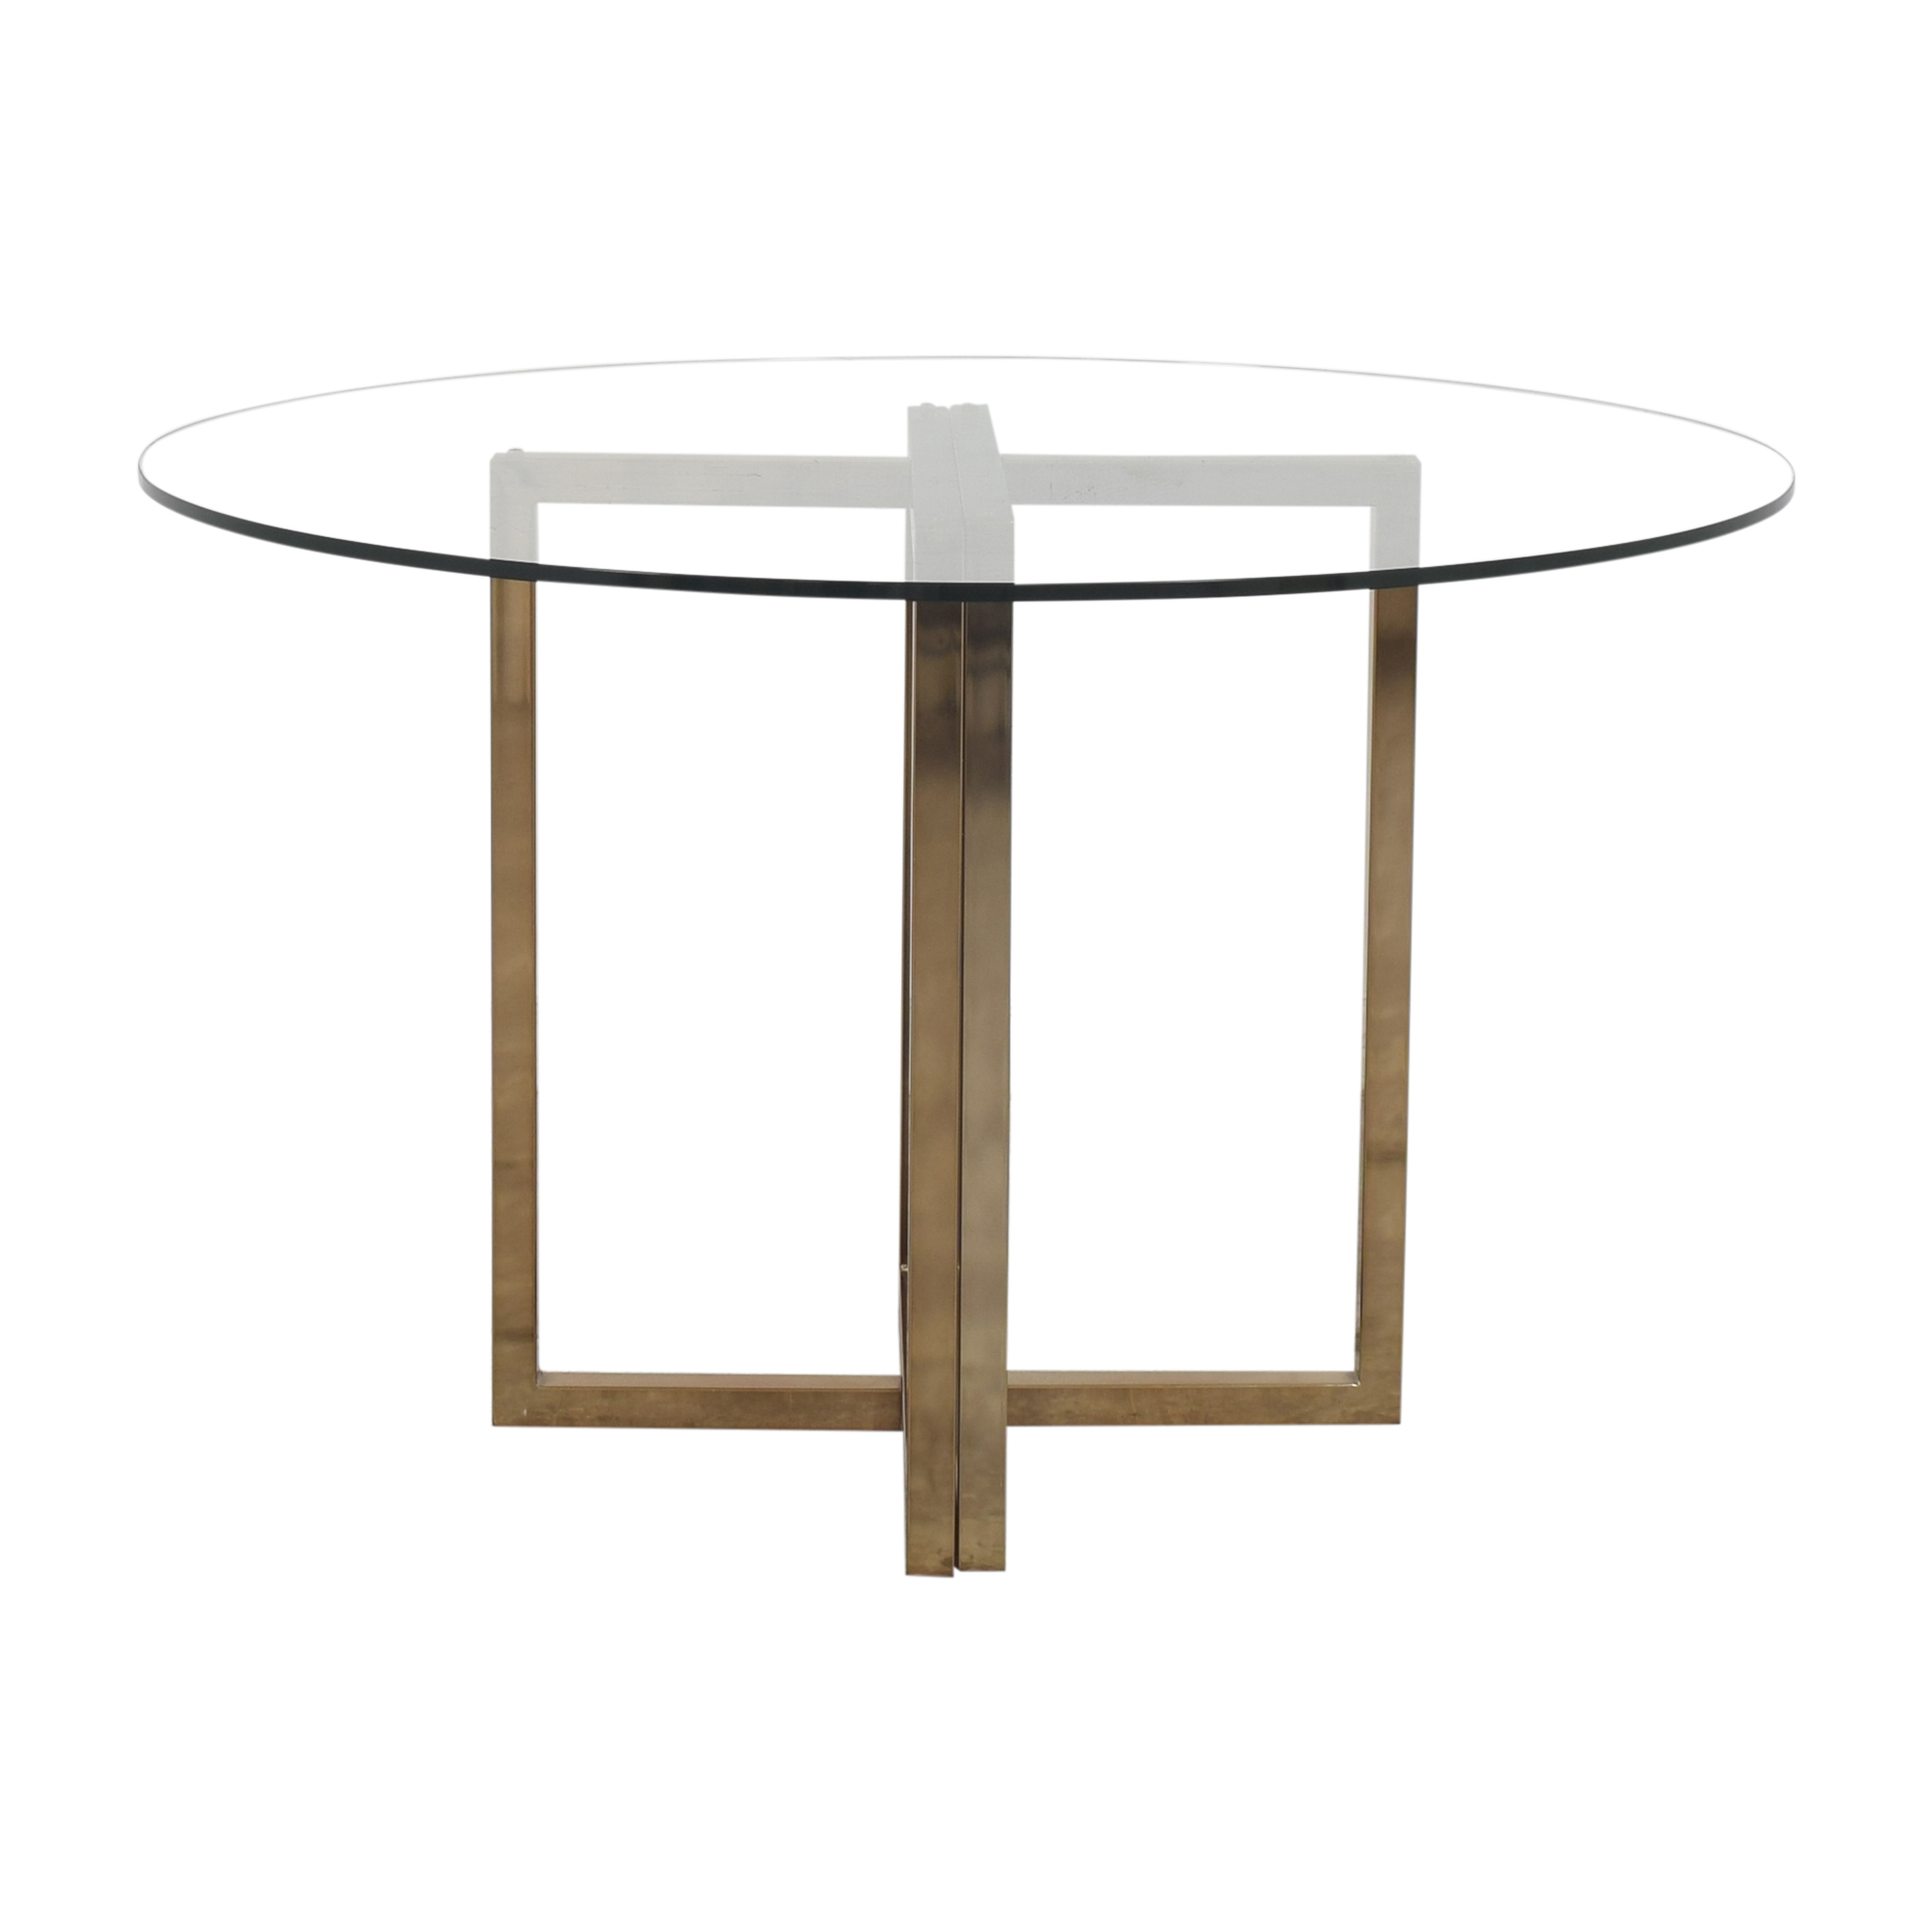 CB2 CB2 Silverado Round Transparent Dining Table used